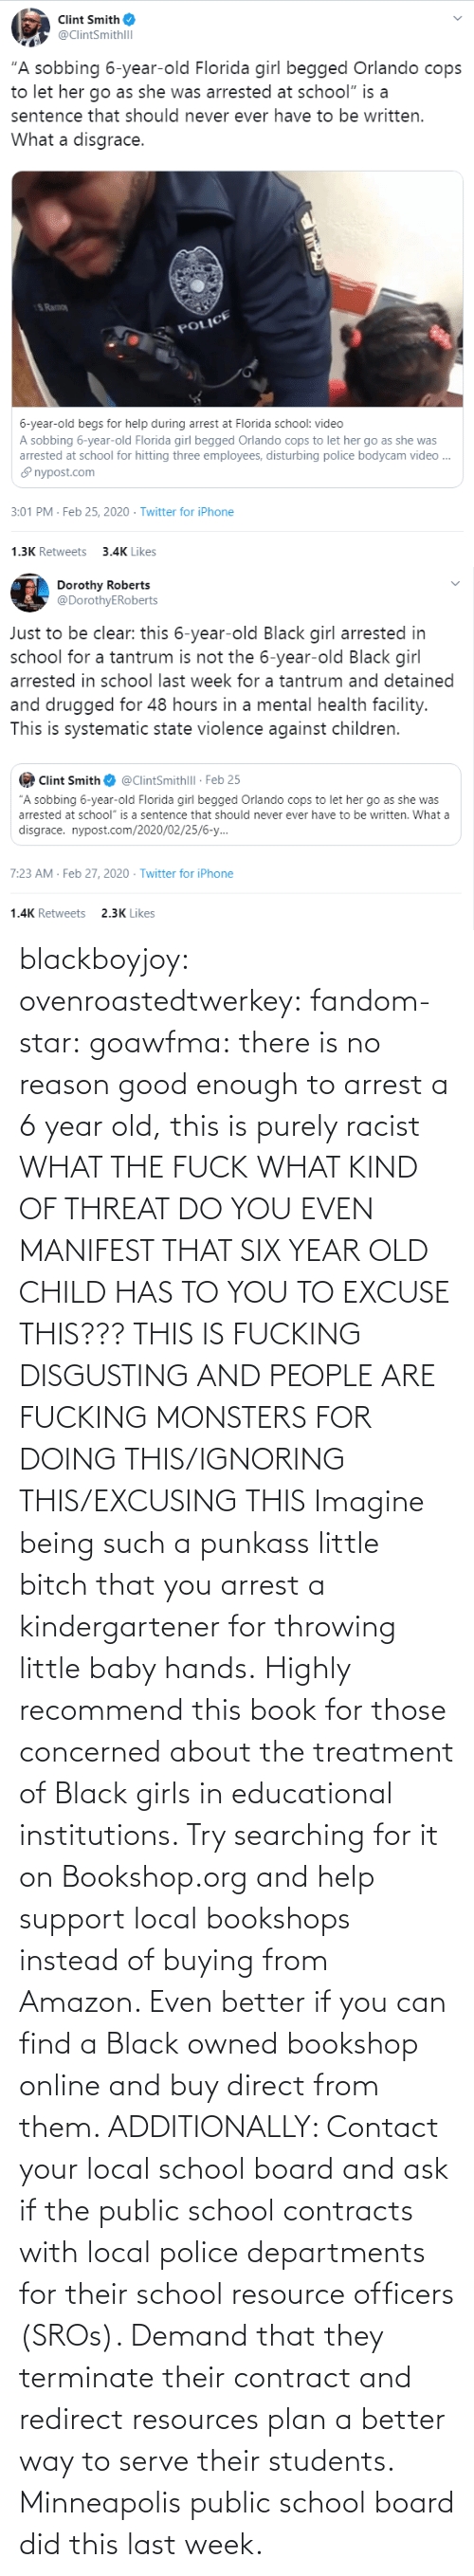 Kind: blackboyjoy:  ovenroastedtwerkey:  fandom-star:  goawfma: there is no reason good enough to arrest a 6 year old, this is purely racist WHAT THE FUCK WHAT KIND OF THREAT DO YOU EVEN MANIFEST THAT SIX YEAR OLD CHILD HAS TO YOU TO EXCUSE THIS??? THIS IS FUCKING DISGUSTING AND PEOPLE ARE FUCKING MONSTERS FOR DOING THIS/IGNORING THIS/EXCUSING THIS    Imagine being such a punkass little bitch that you arrest a kindergartener for throwing little baby hands.  Highly recommend this book for those concerned about the treatment of Black girls in educational institutions.  Try searching for it on Bookshop.org and help support local bookshops instead of buying from Amazon. Even better if you can find a Black owned bookshop online and buy direct from them.  ADDITIONALLY: Contact your local school board and ask if the public school contracts with local police departments for their school resource officers (SROs). Demand that they terminate their contract and redirect resources plan a better way to serve their students. Minneapolis public school board did this last week.